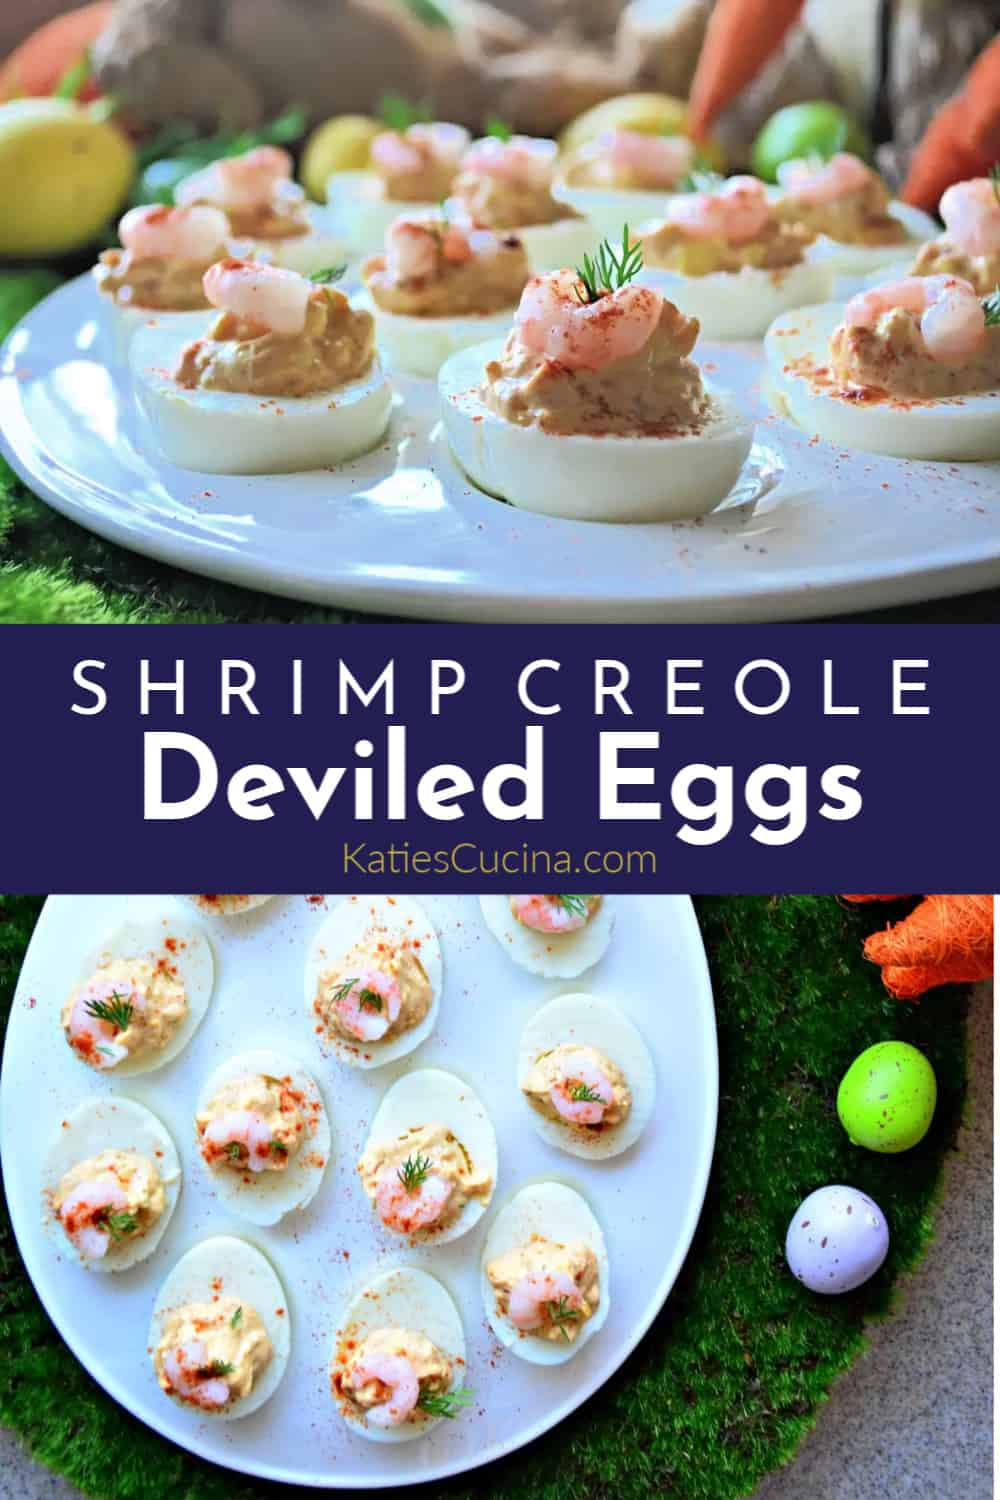 Shrimp Creole Deviled Eggs With Text and collage